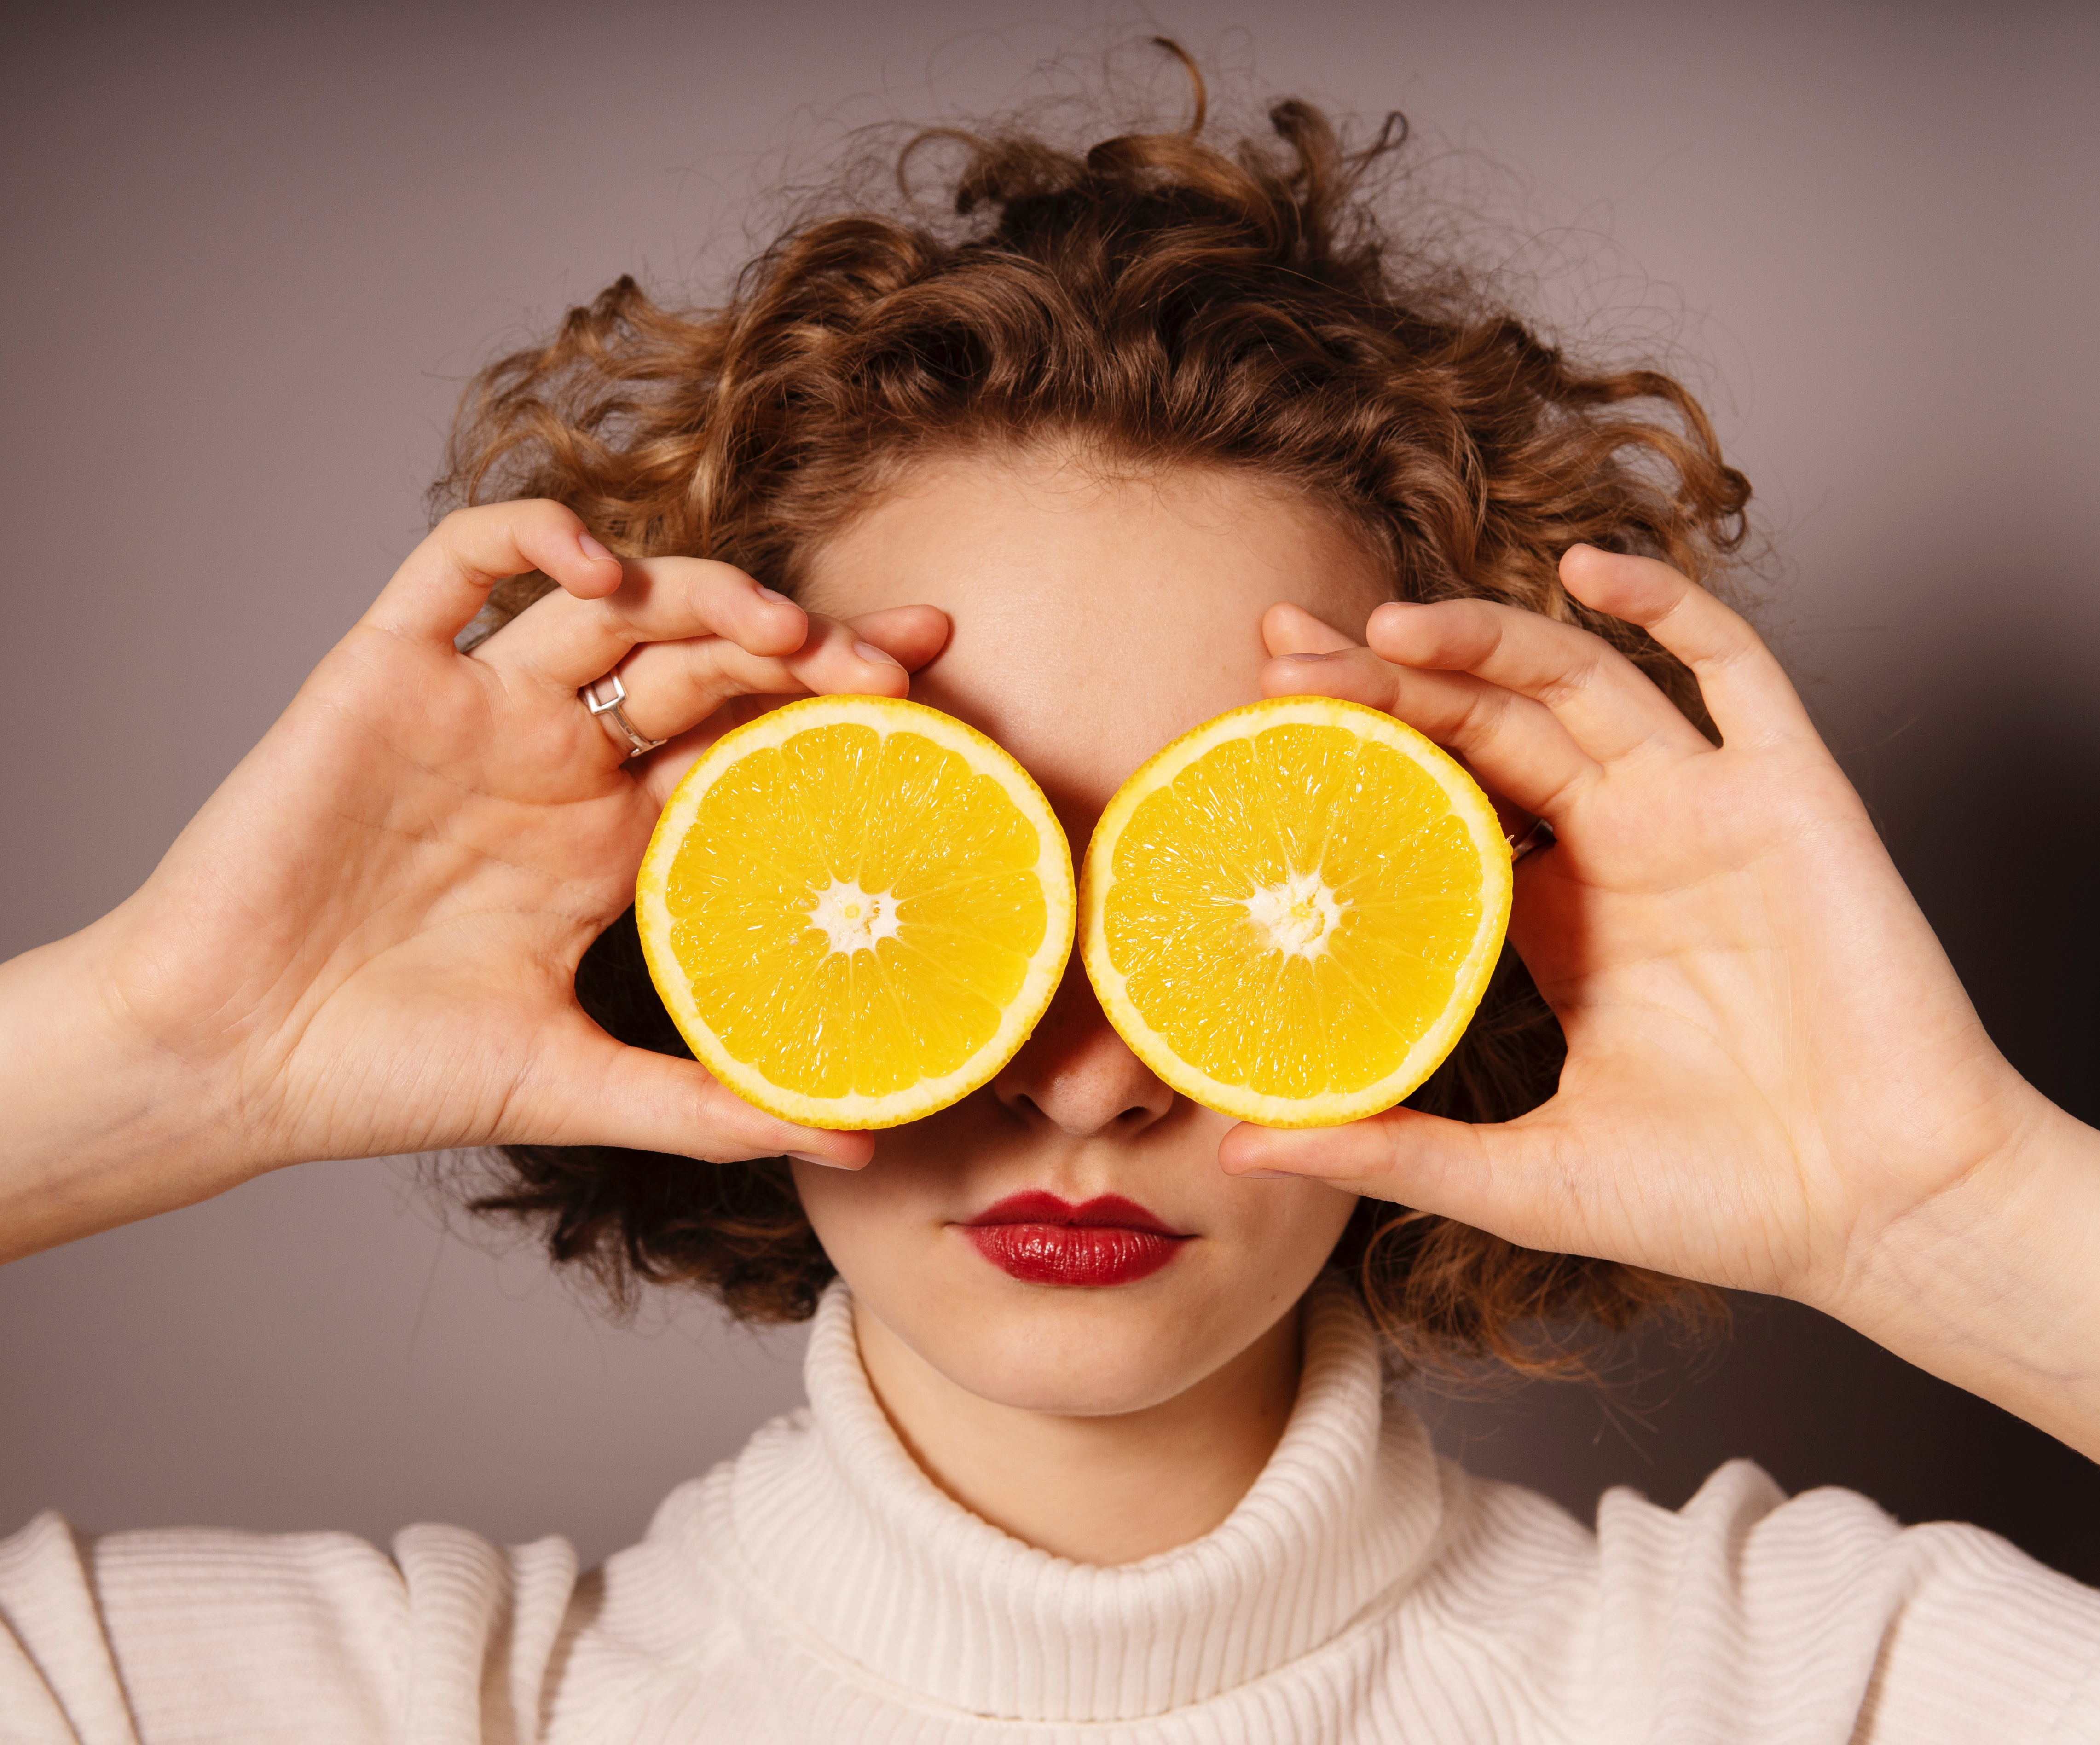 Woman with two half oranges in front of her eyes.